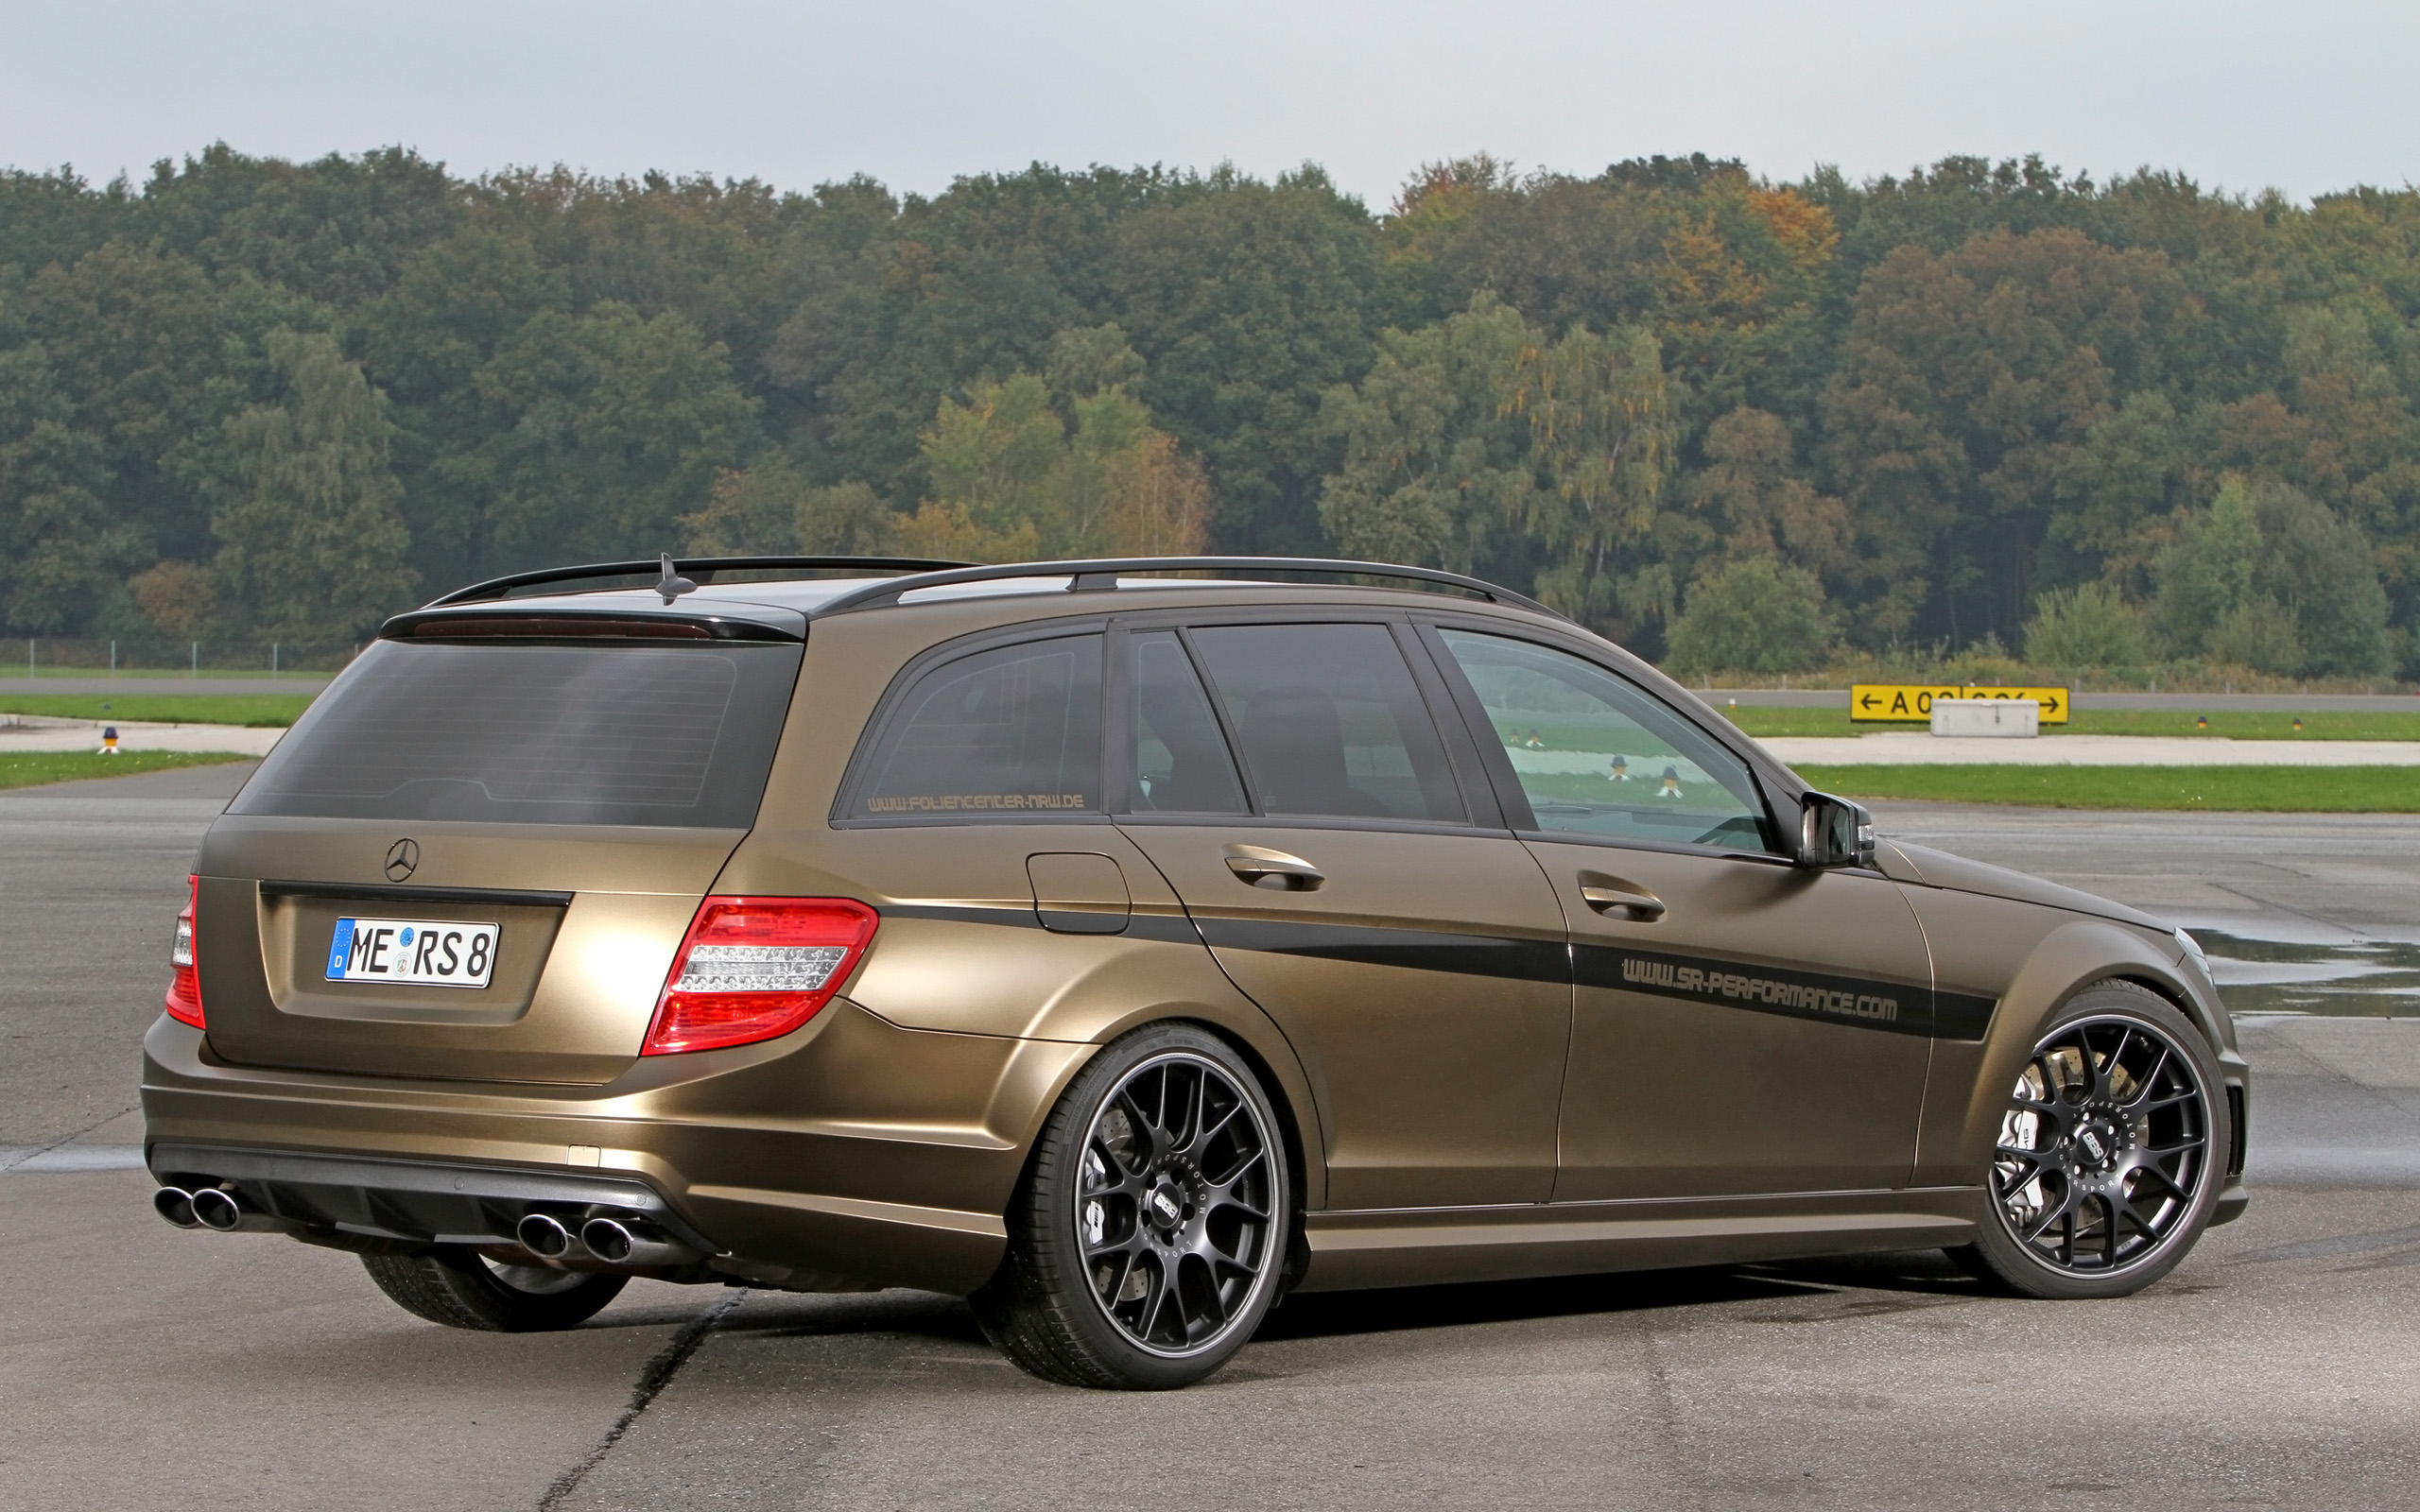 2013 foliencenter nrw mercedes benz c63 amg stationwagon